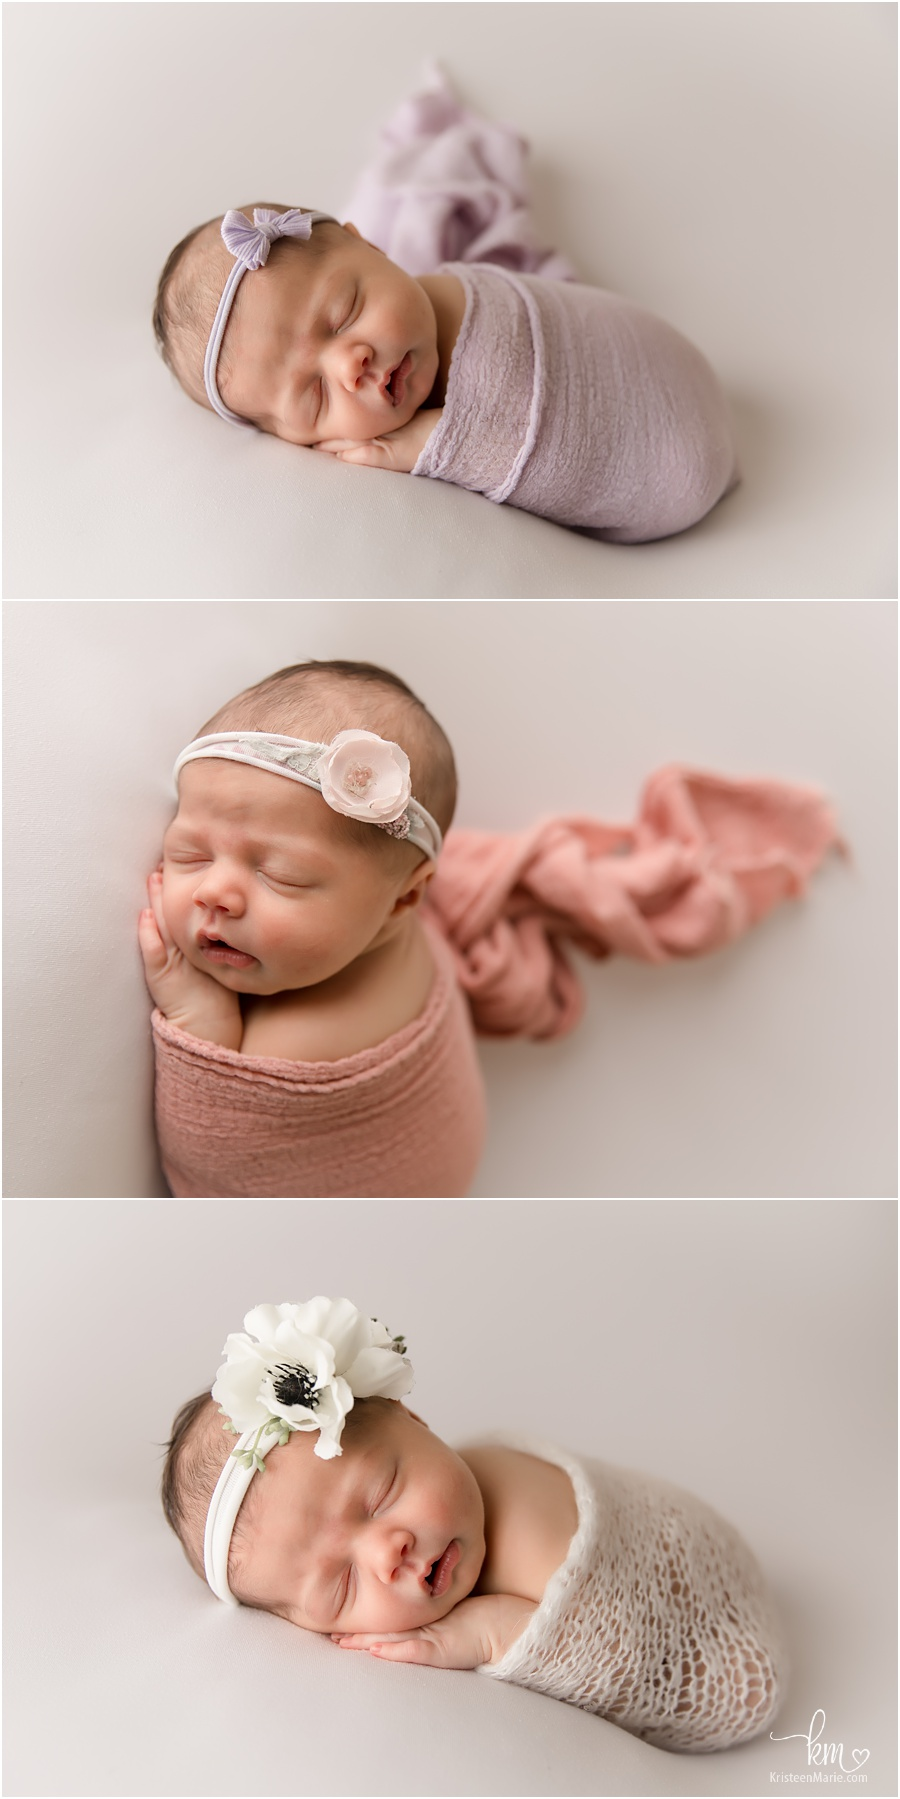 newborn baby girl on white